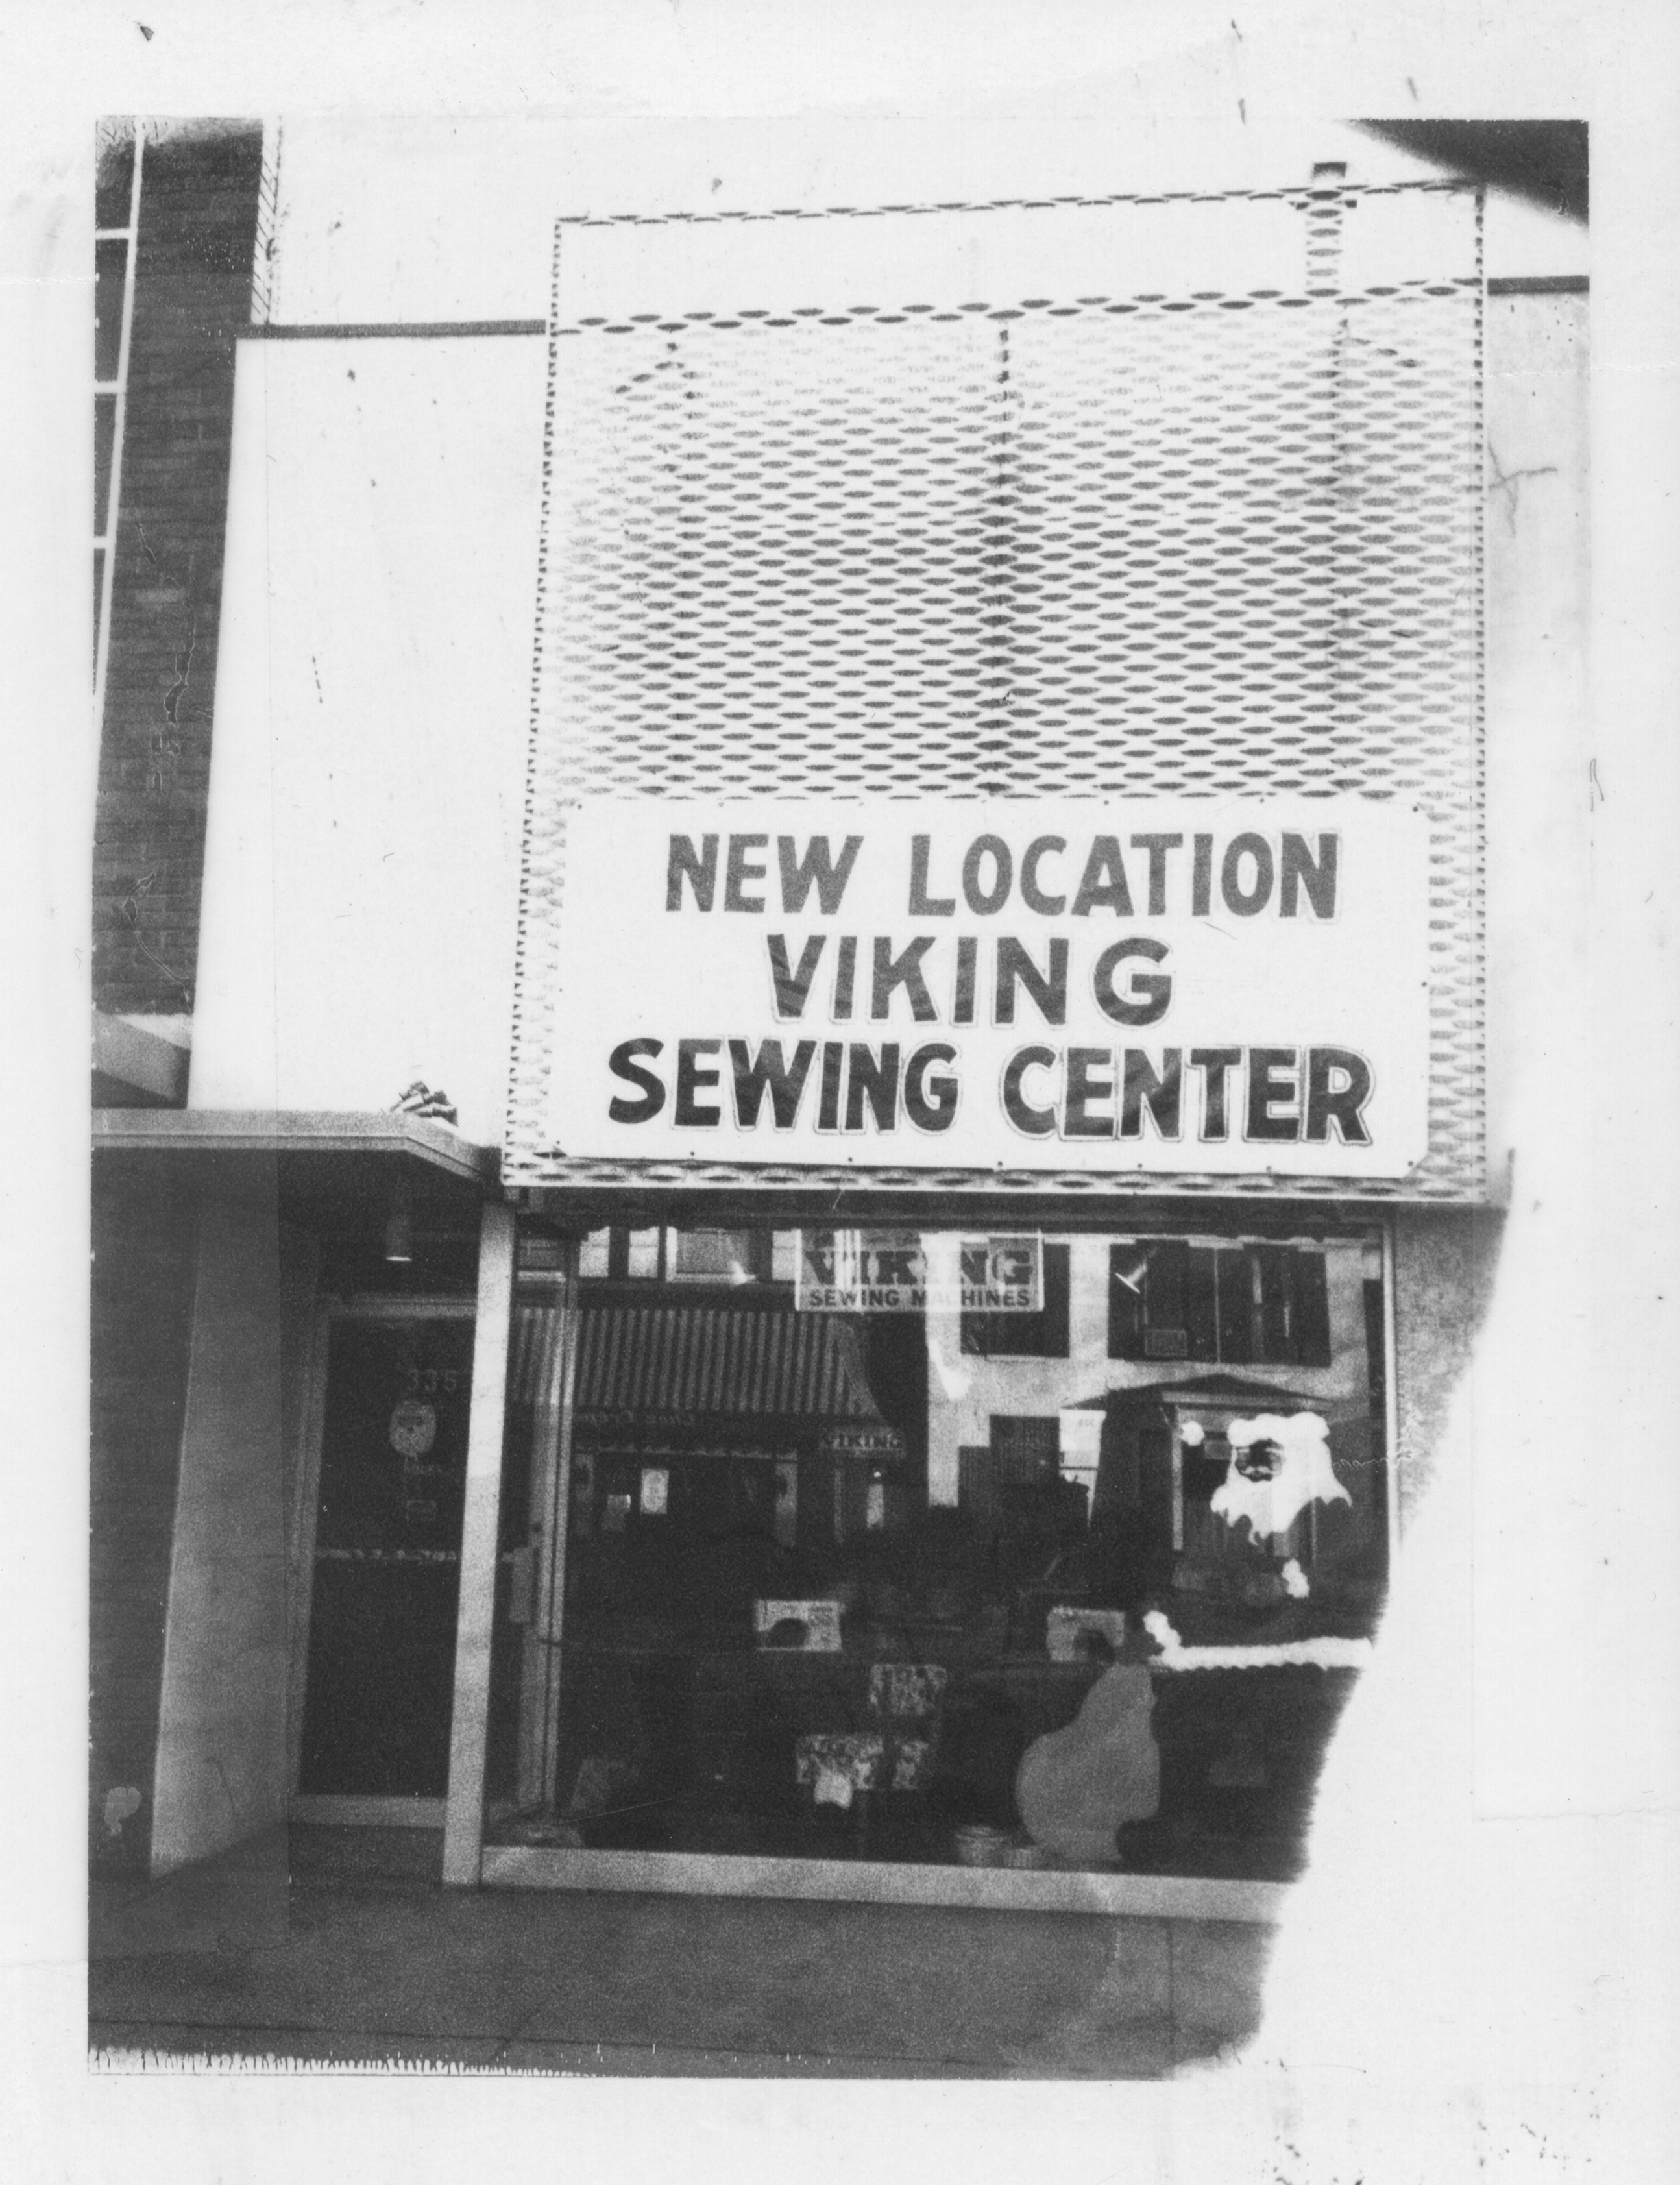 Viking Sewing Center, 1971 image